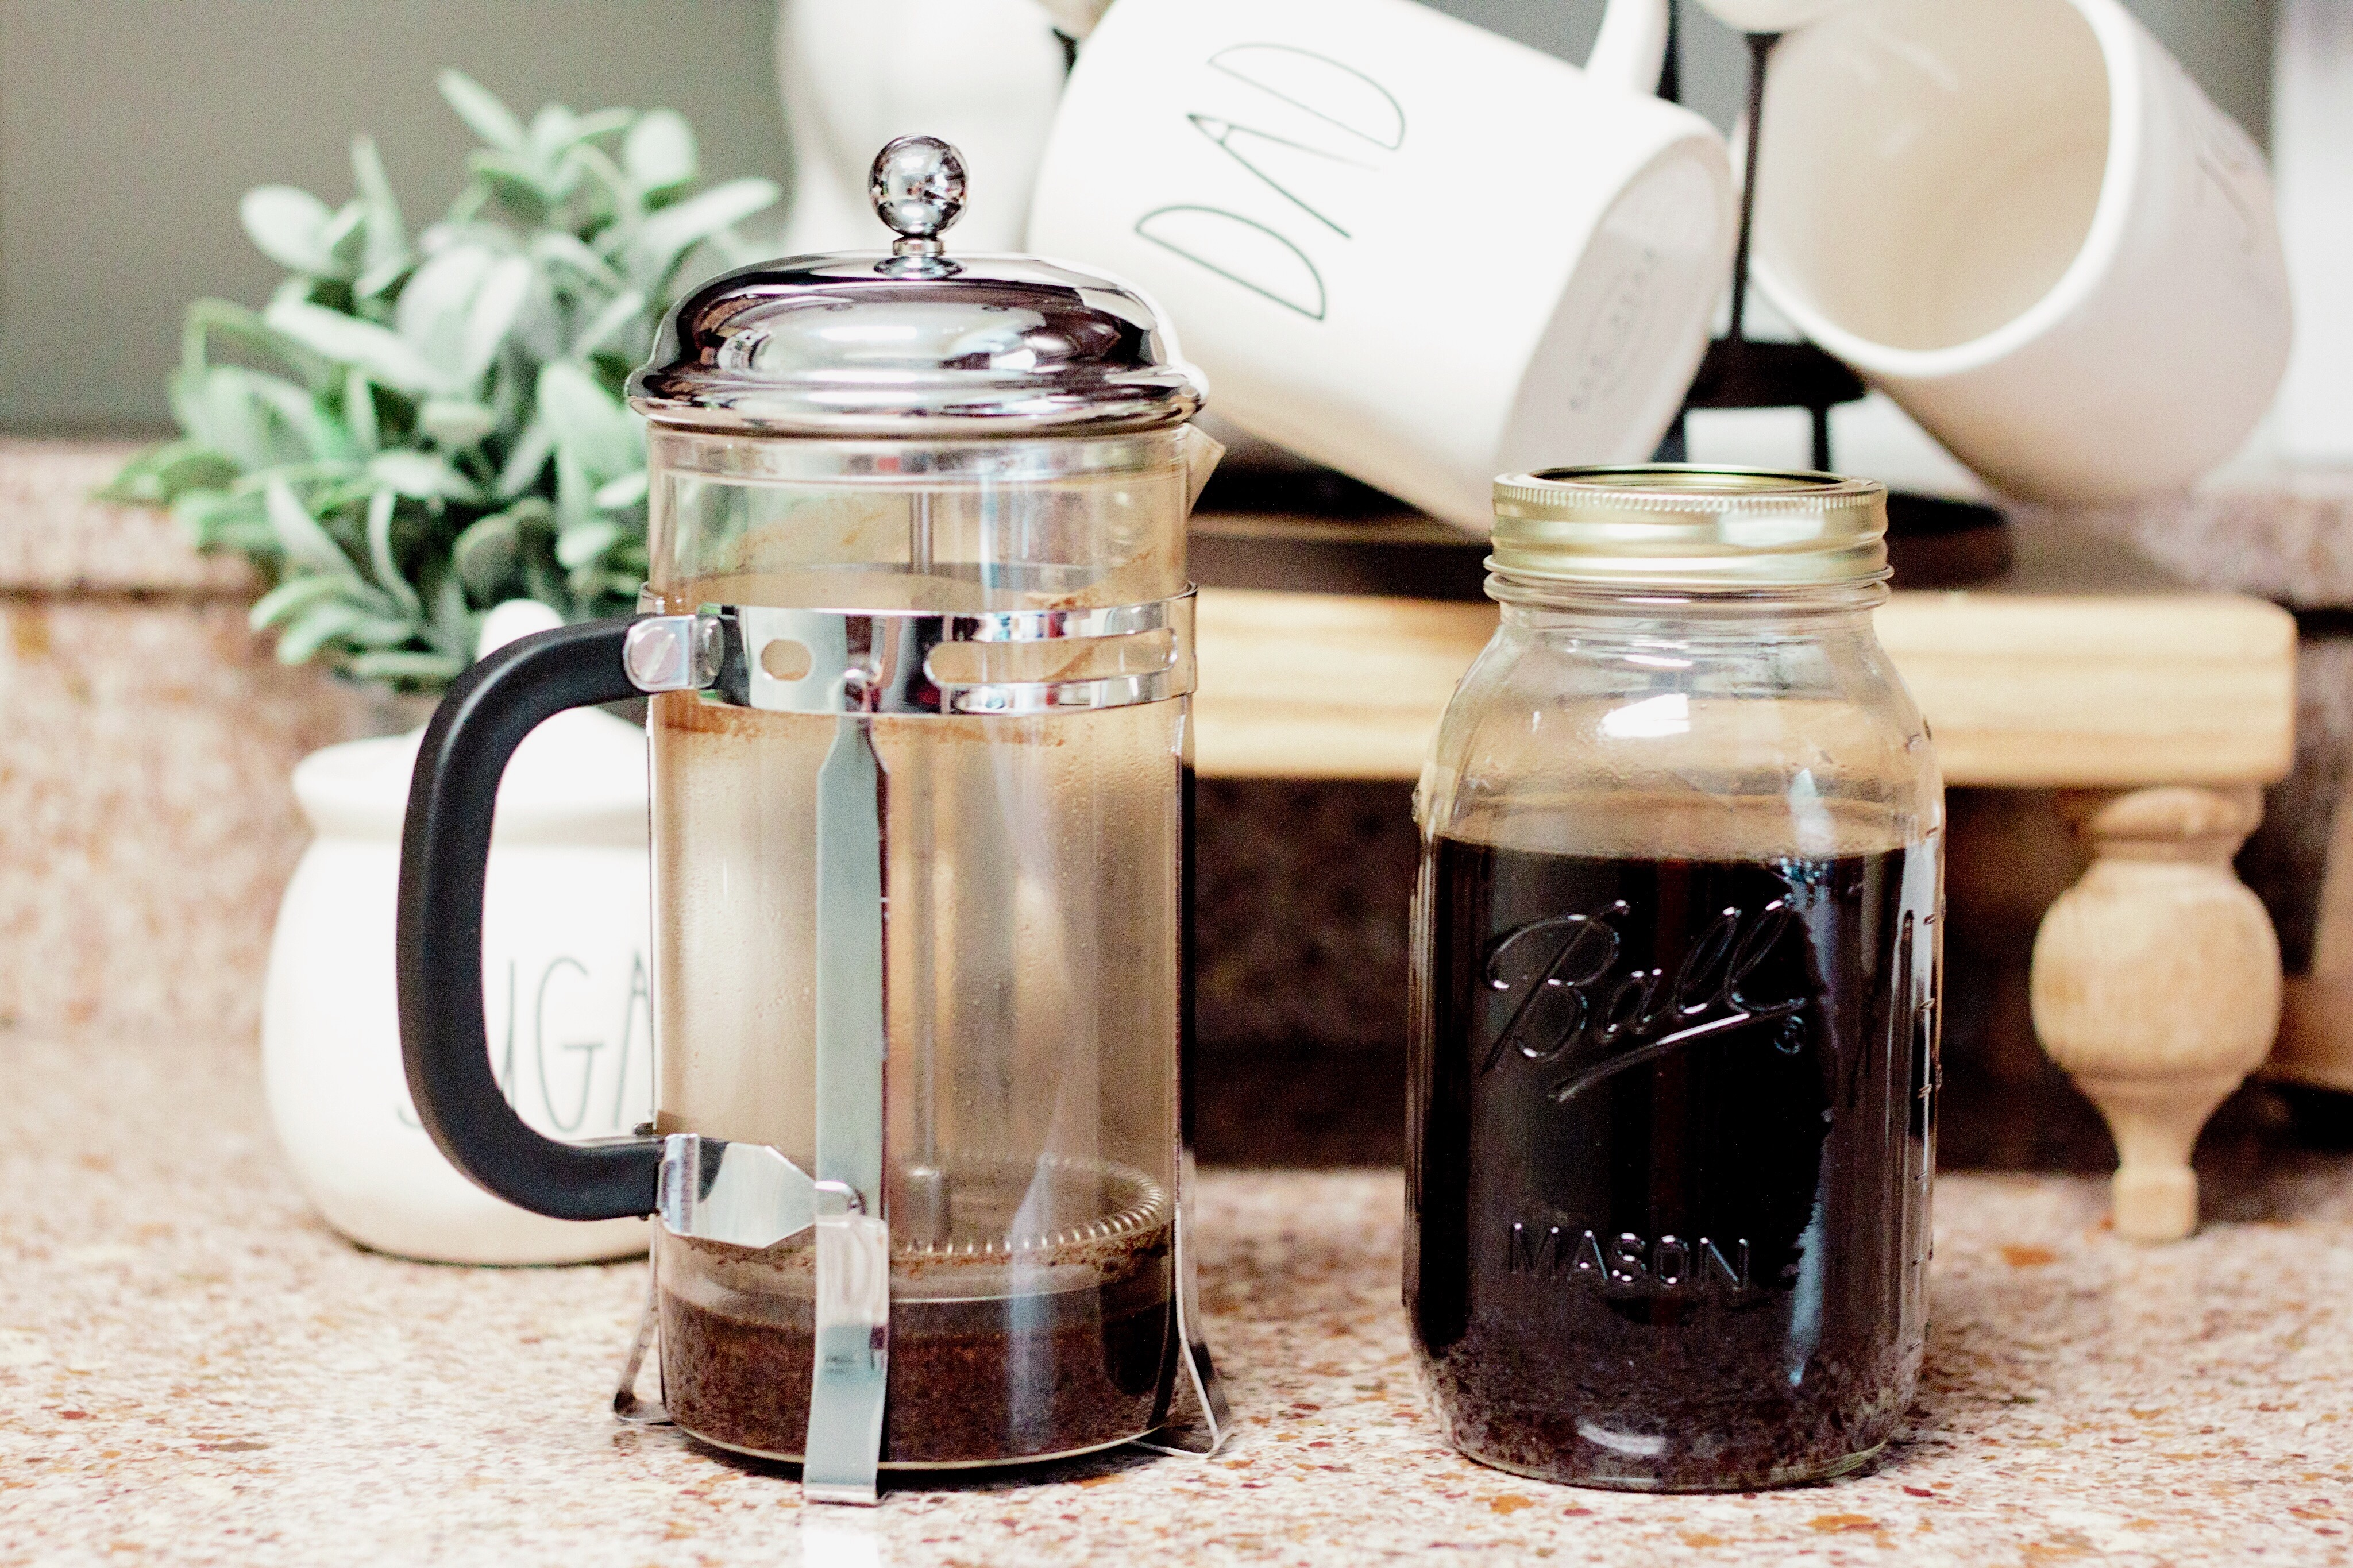 Easy dairy-free cold brew iced coffee recipe you will LOVE! Whether your are lactose intolerant, on the paleo diet or you just simply don't like dairy, this iced coffee is a must try!!